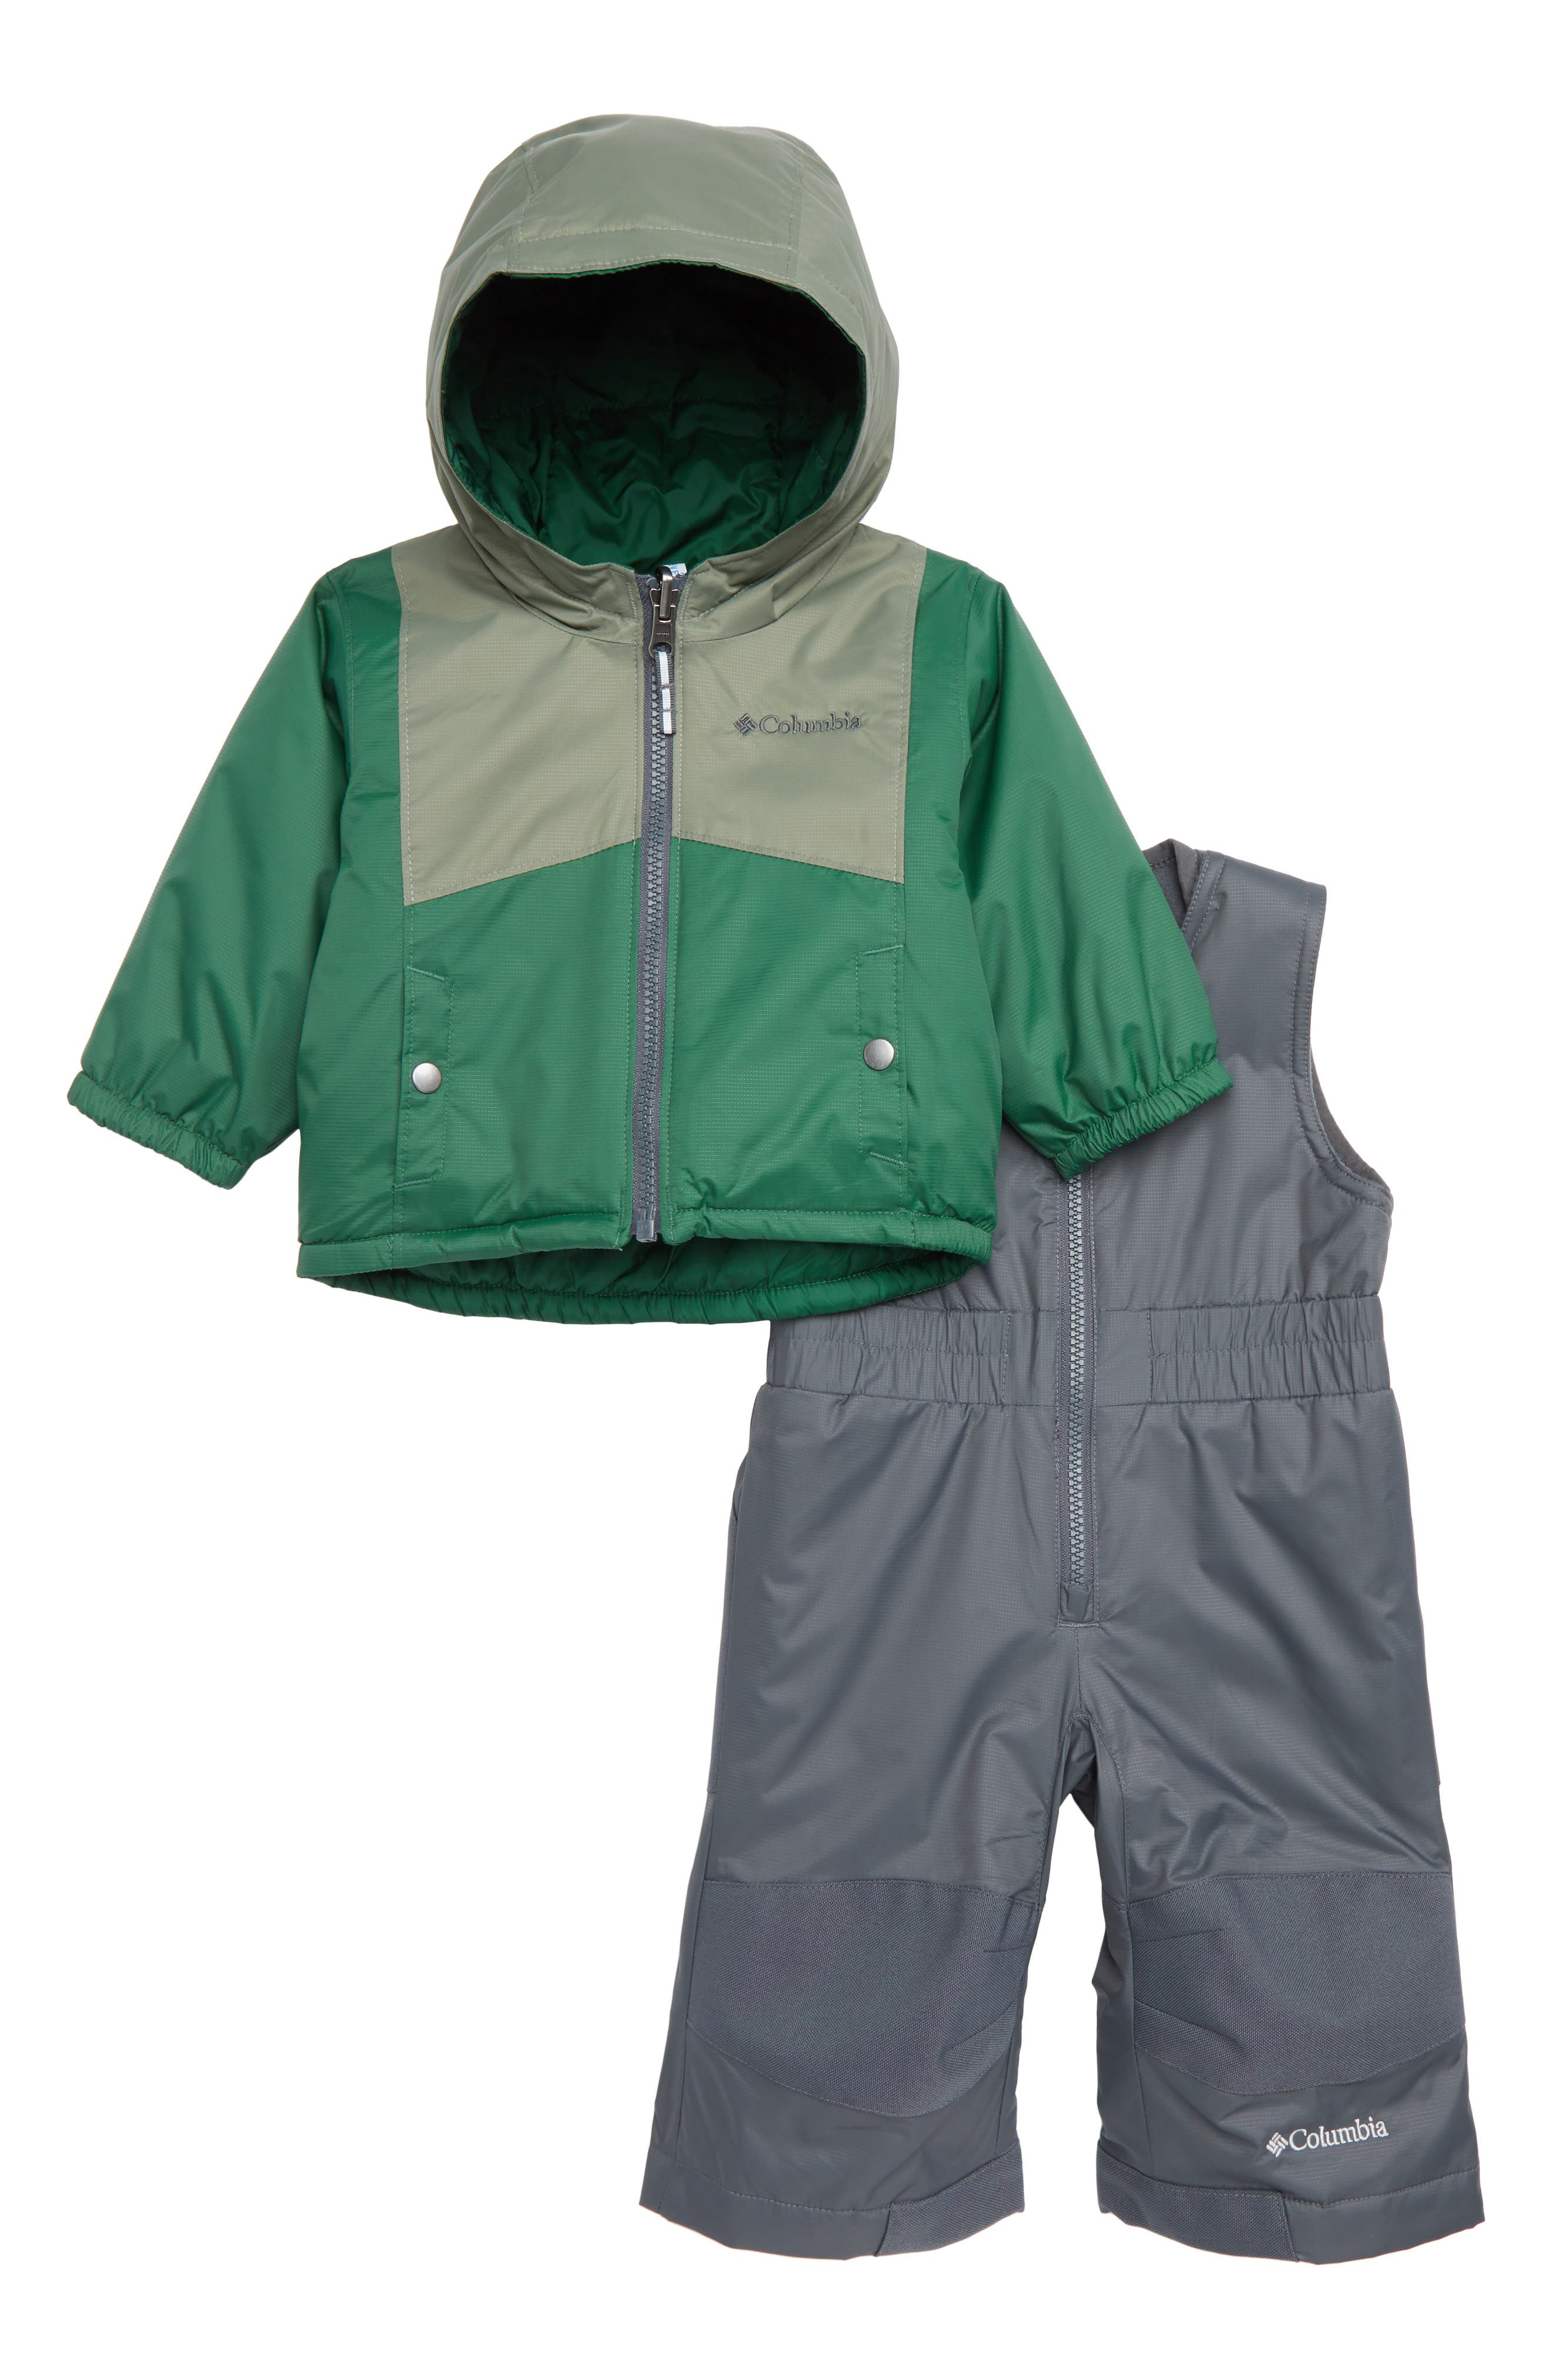 Double Flake Waterproof Insulated Jacket & Bib Snowsuit,                             Main thumbnail 1, color,                             FOREST, CYPRESS